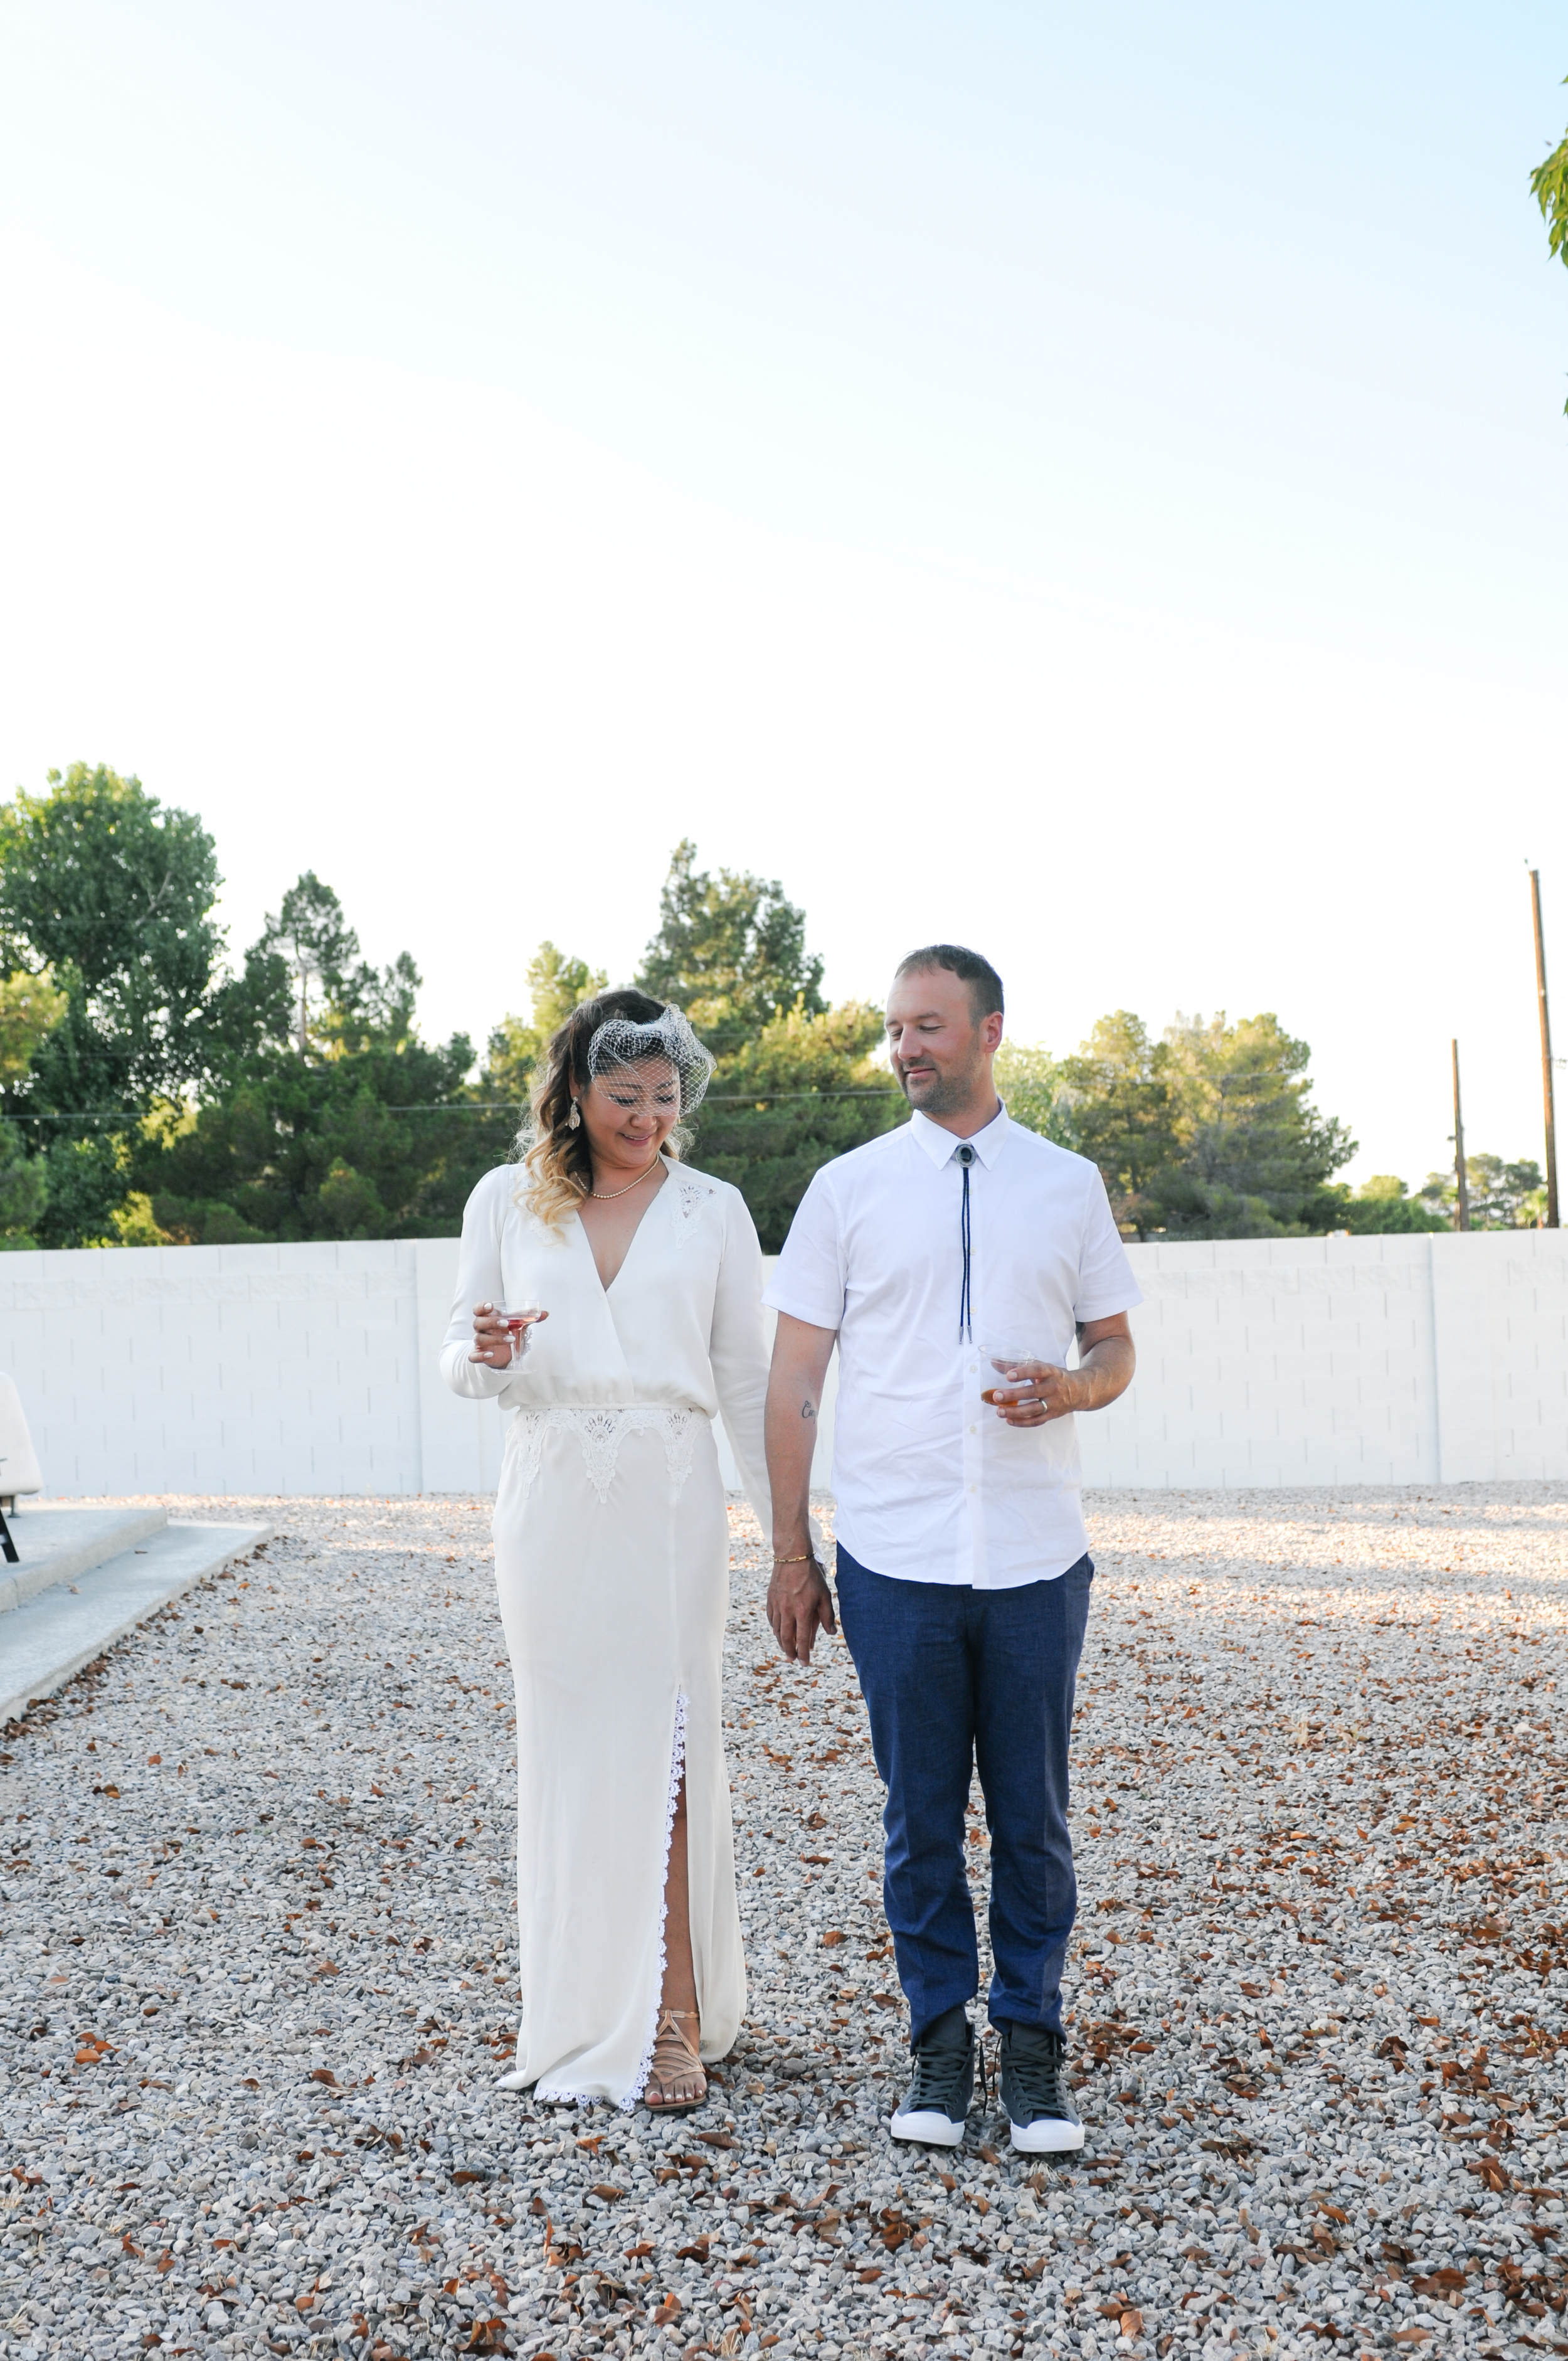 las vegas wedding, backyard wedding, simple wedding, vintage dress, simple wedding las vegas, california backyard wedding, ashley marie myers